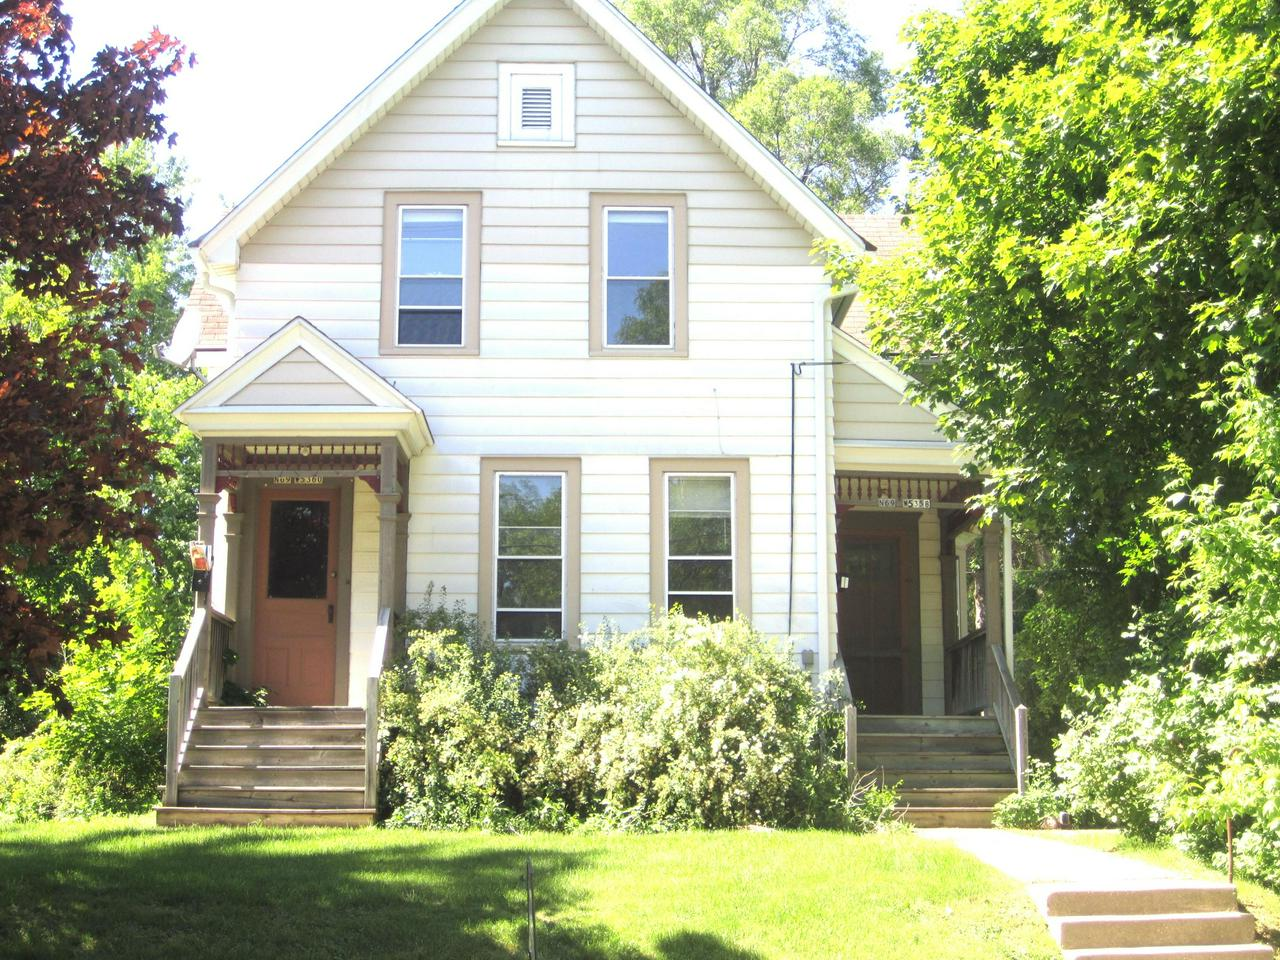 Victorian home with yesteryears style, pocket doors,  lots of charm , stained glass window, Bayed window, hardwood floors,  3 open porches, You cannot duplicate ones like this anymore.. currently used as a duplexeasily converted back to a single familyBroker owned property there are two tax bills for this propertycompletely new roof in oct 2018